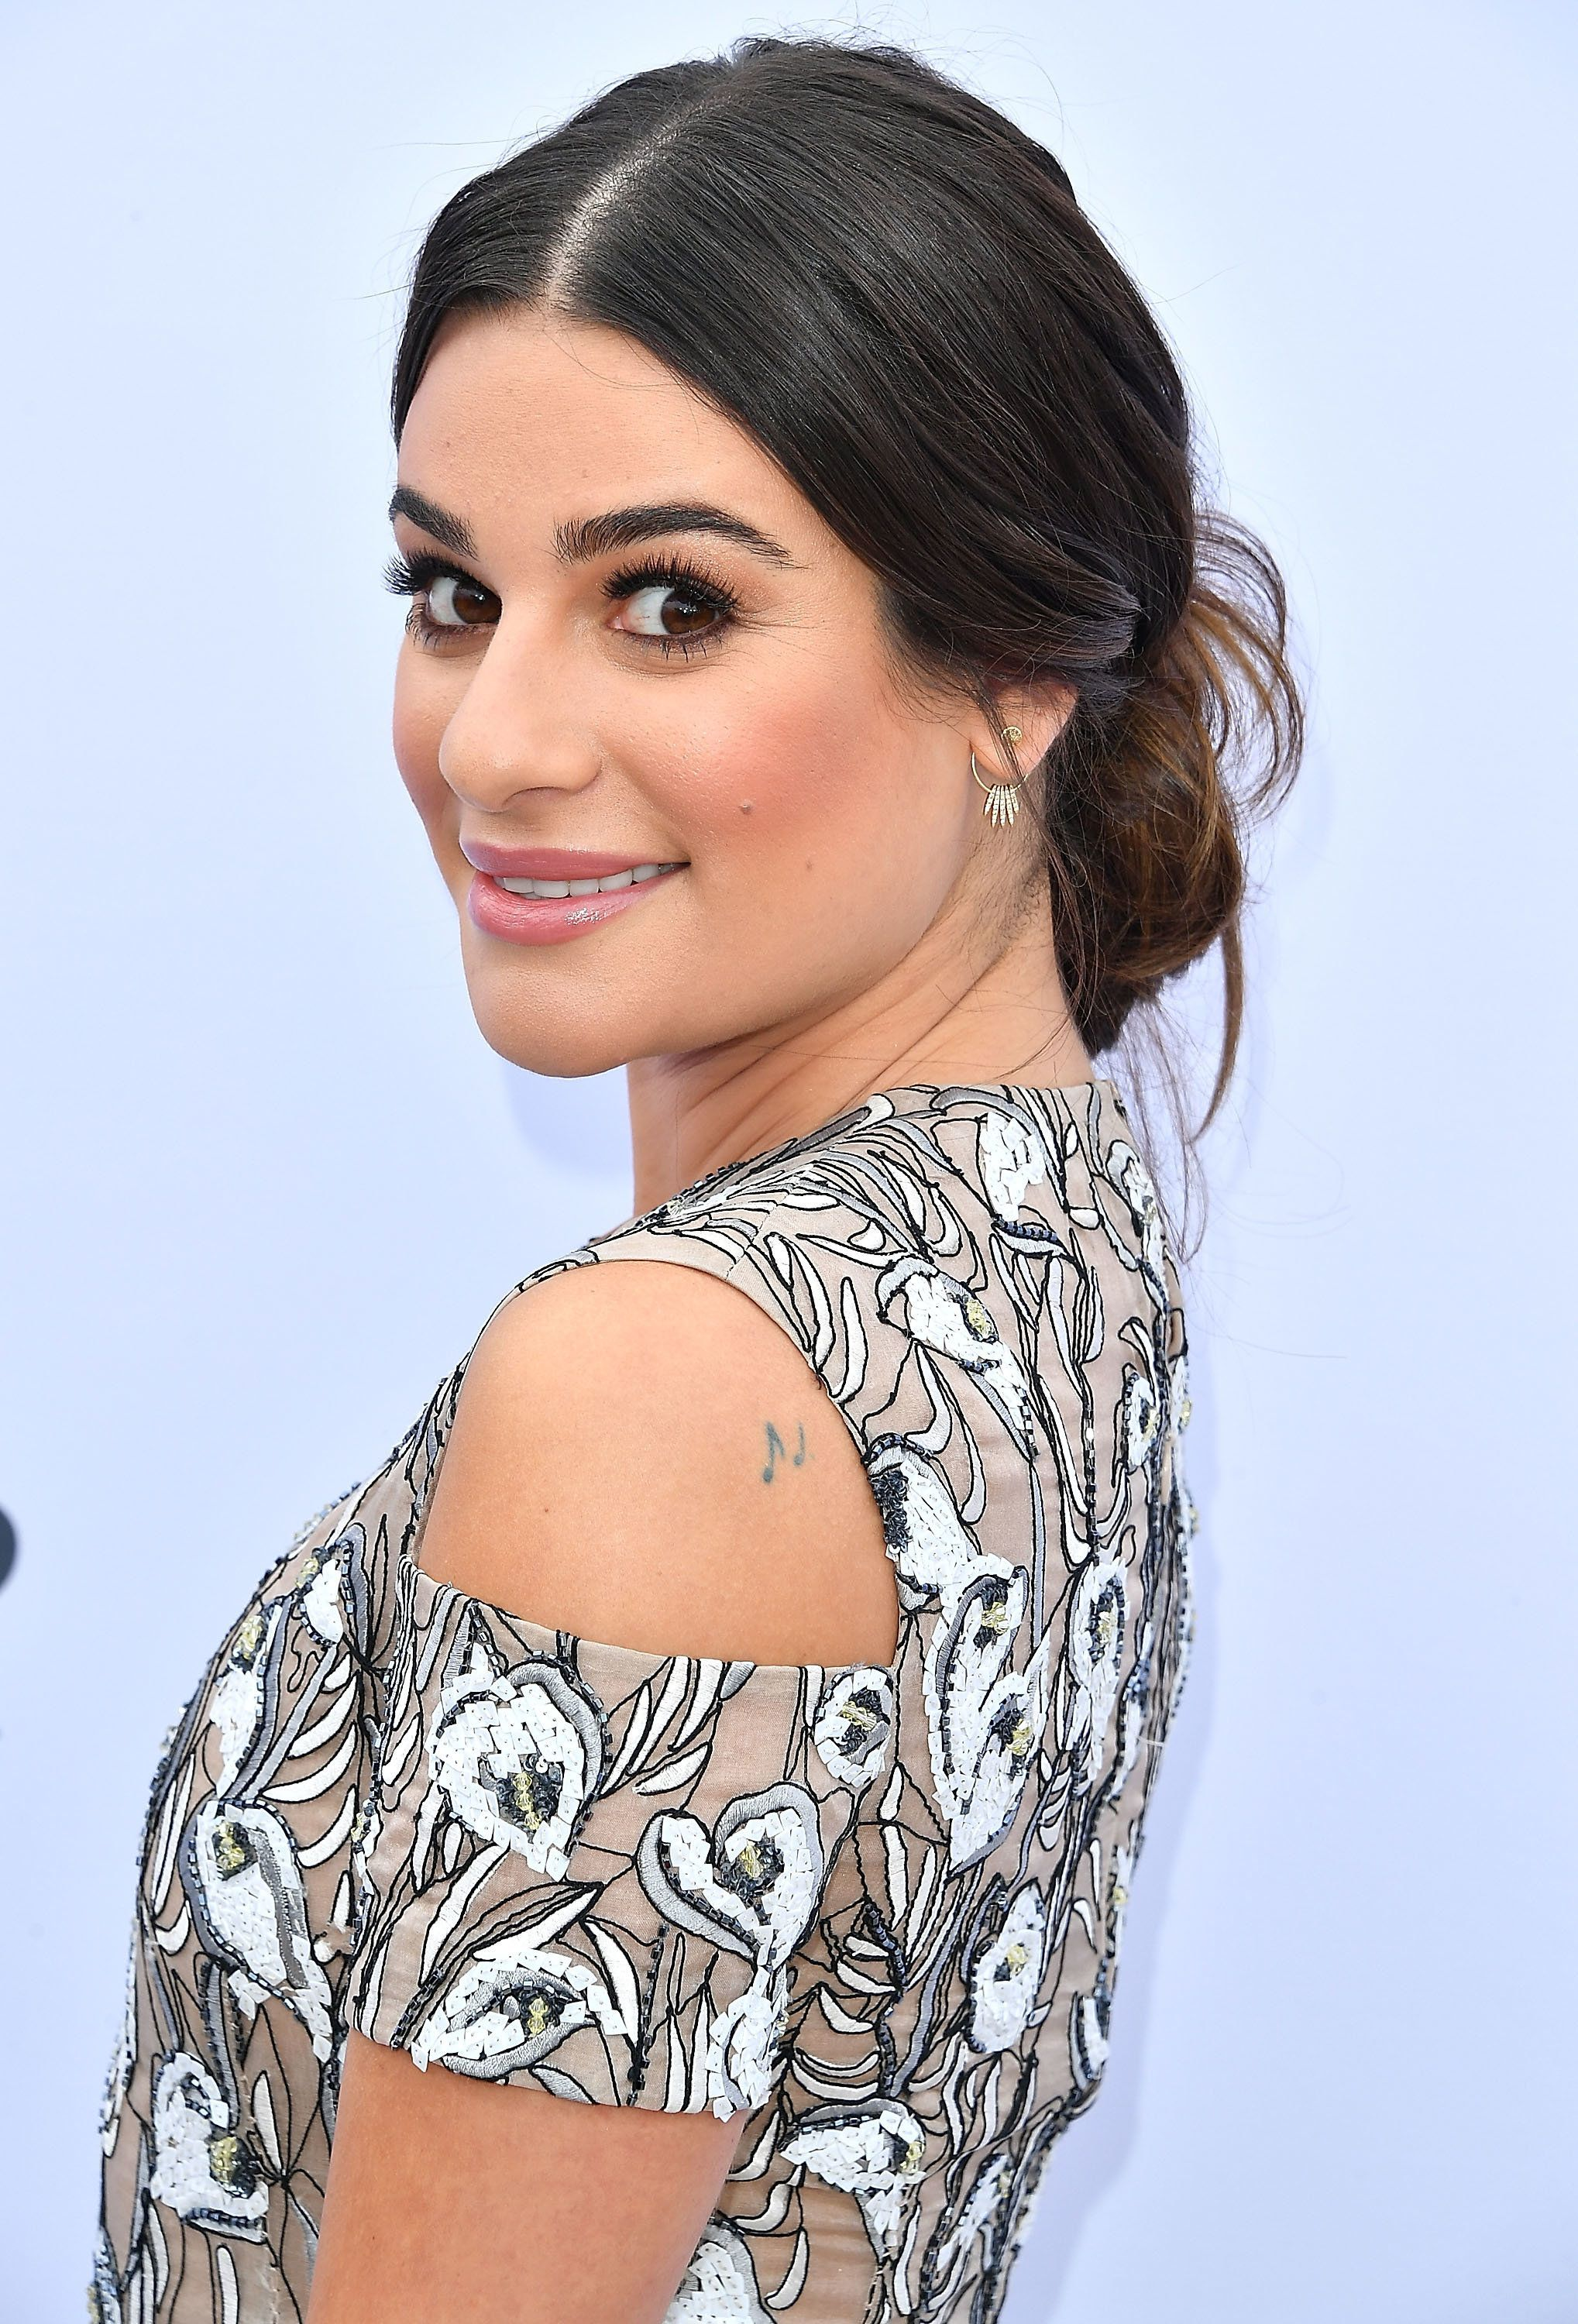 HOLLYWOOD, CA - DECEMBER 07:  Lea Michele arrives at the The Hollywood Reporter's 25th Annual Women In Entertainment Breakfast at Milk Studios on December 7, 2016 in Hollywood, California.  (Photo by Steve Granitz/WireImage)